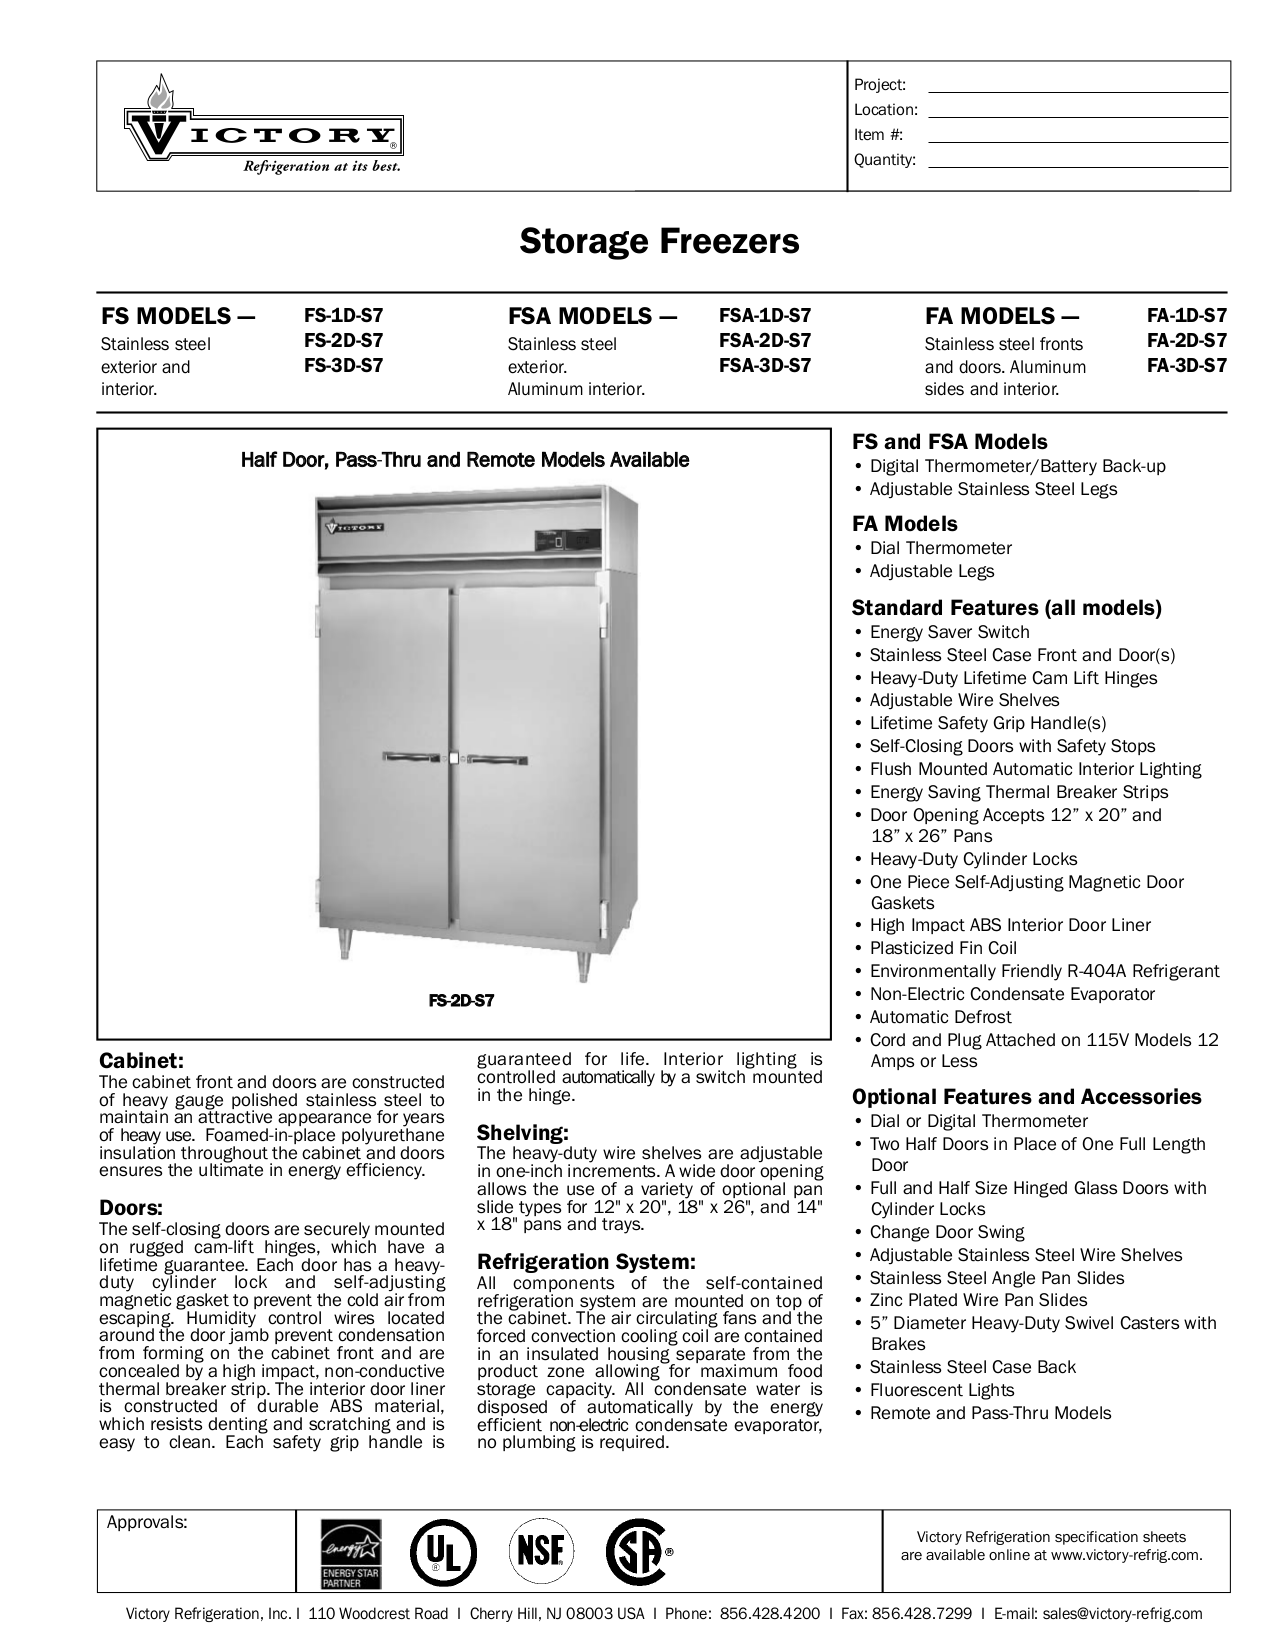 pdf for Victory Freezer FA-3D-S7 manual